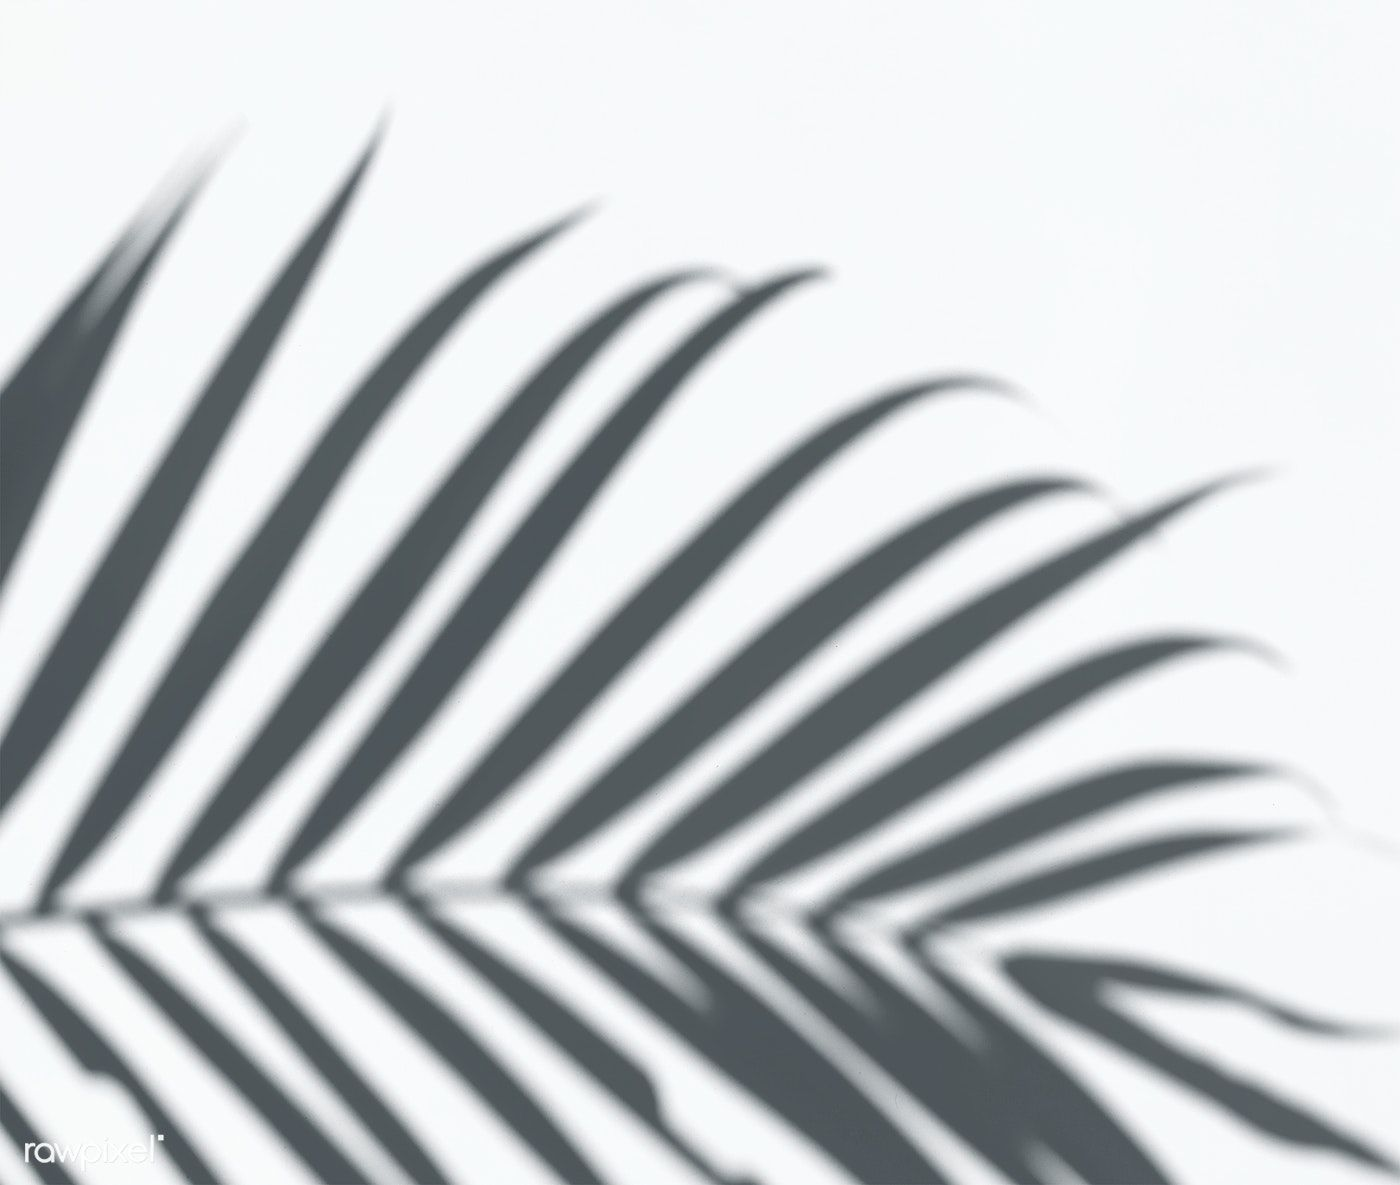 Download Premium Psd Of Shadow Of Palm Leaves On A White Wall 556045 Shadow Plants Palm Leaves Shadow Photography